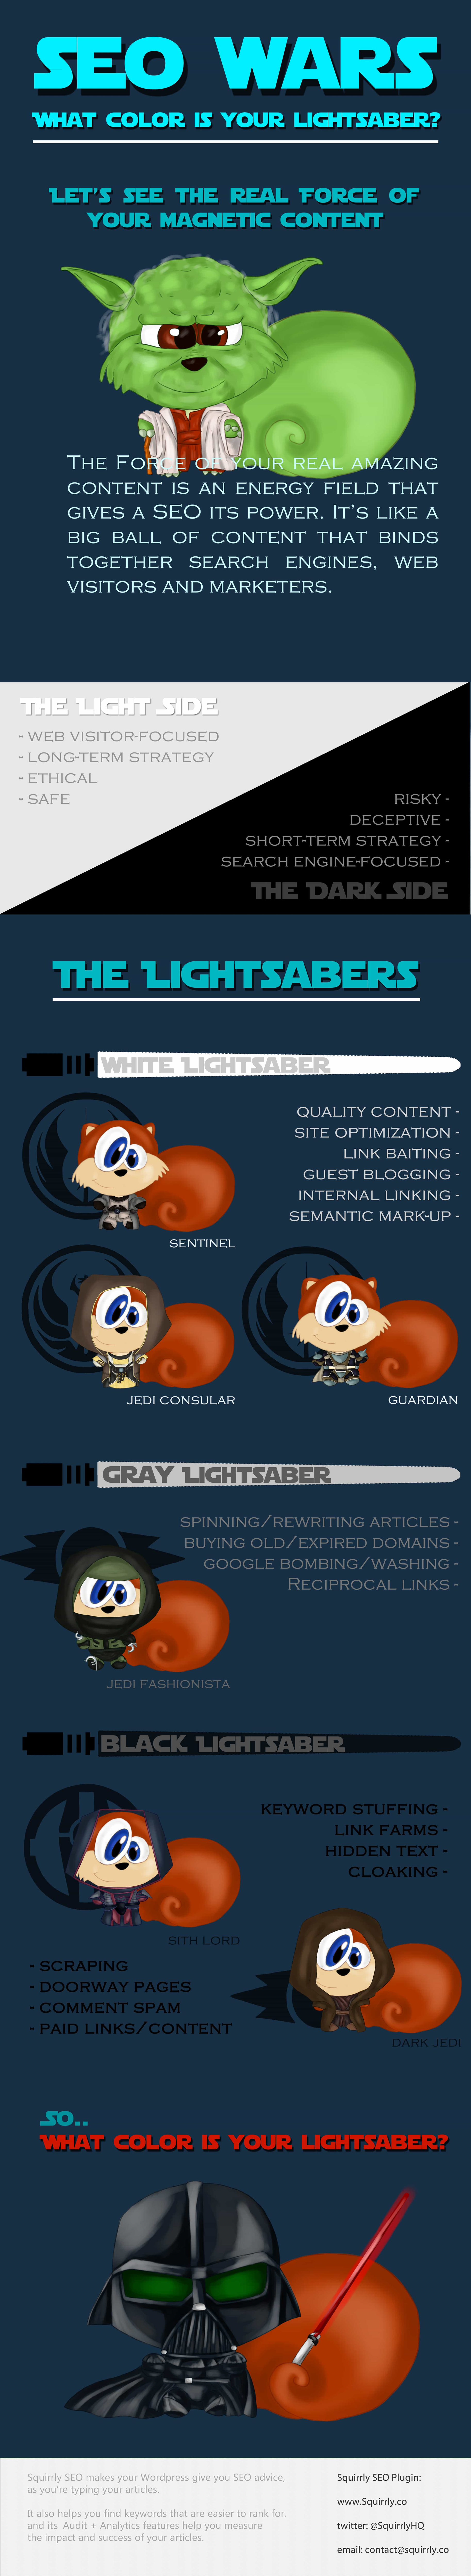 SEO Wars - What color is your LightSaber